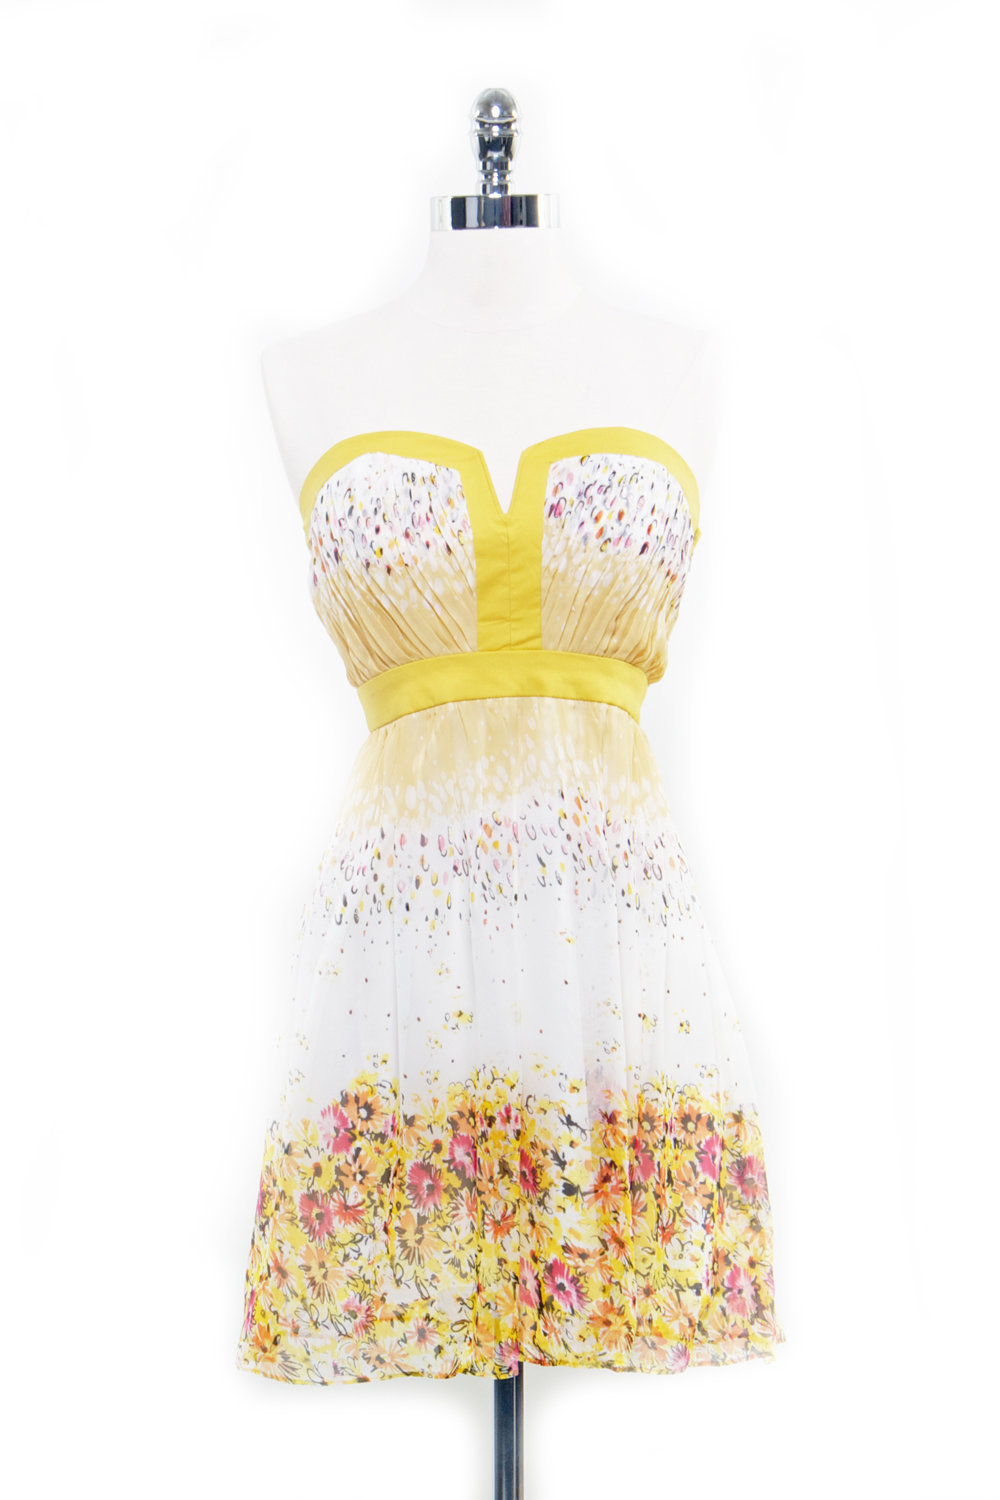 Le Fleur Printed Yellow &amp; White Floral Mini Dress - Unique Vintage - Homecoming Dresses, Pinup &amp; Prom Dresses.